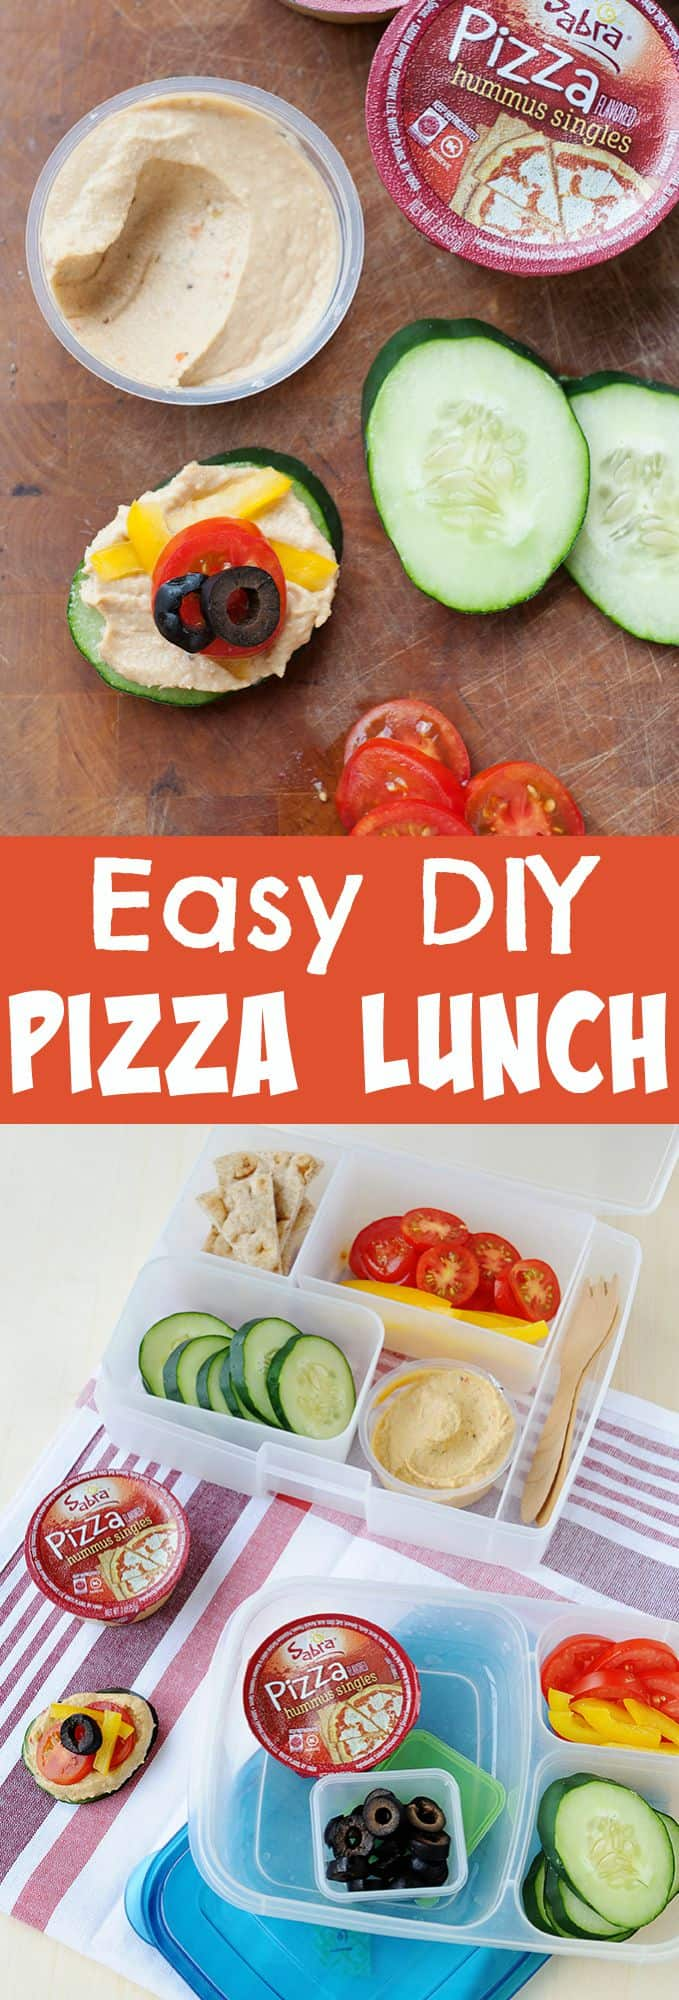 Looking for a healthy lunch idea your kids will love? Check out this DIY Pizza lunch! super easy to make with fresh ingredients.